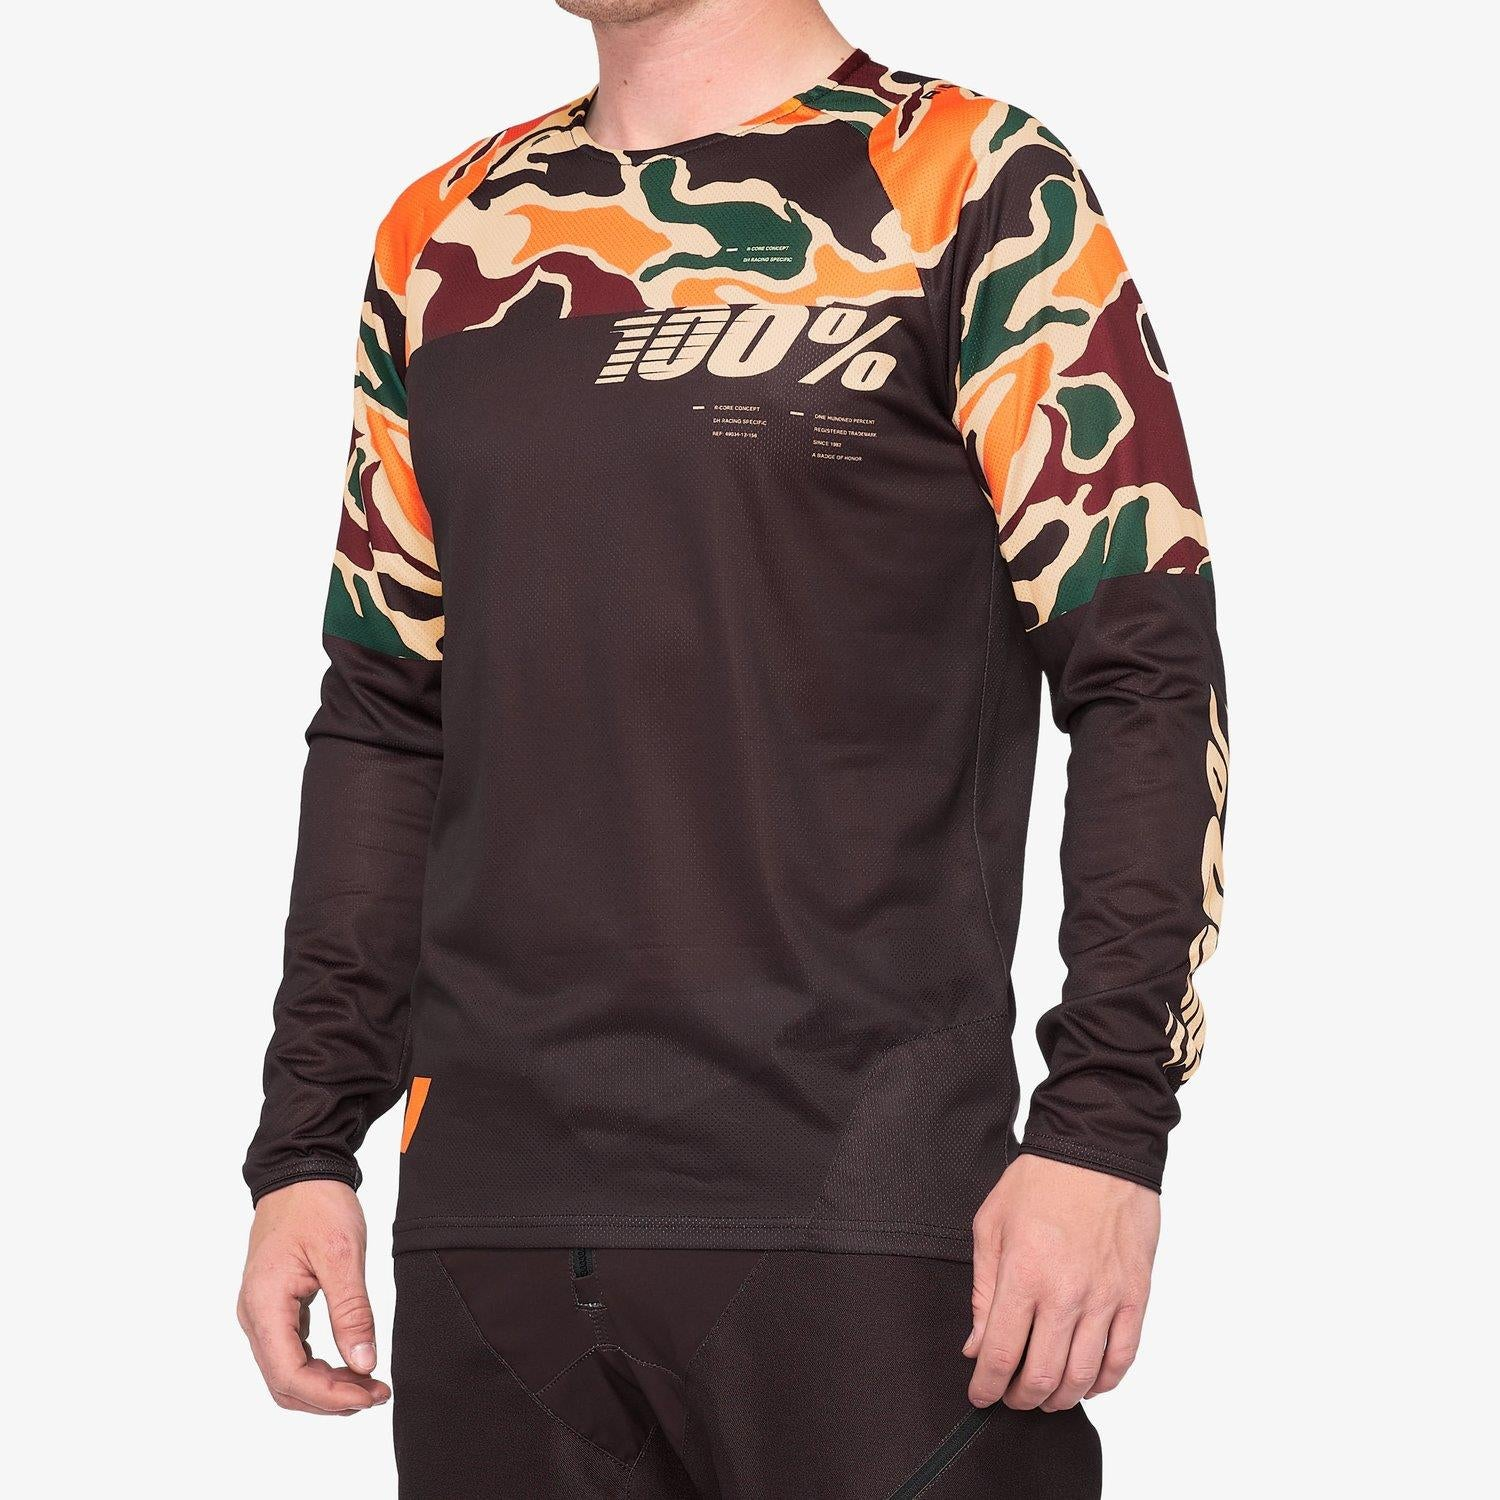 100% R-Core Race Jersey - Warm Black/Camo